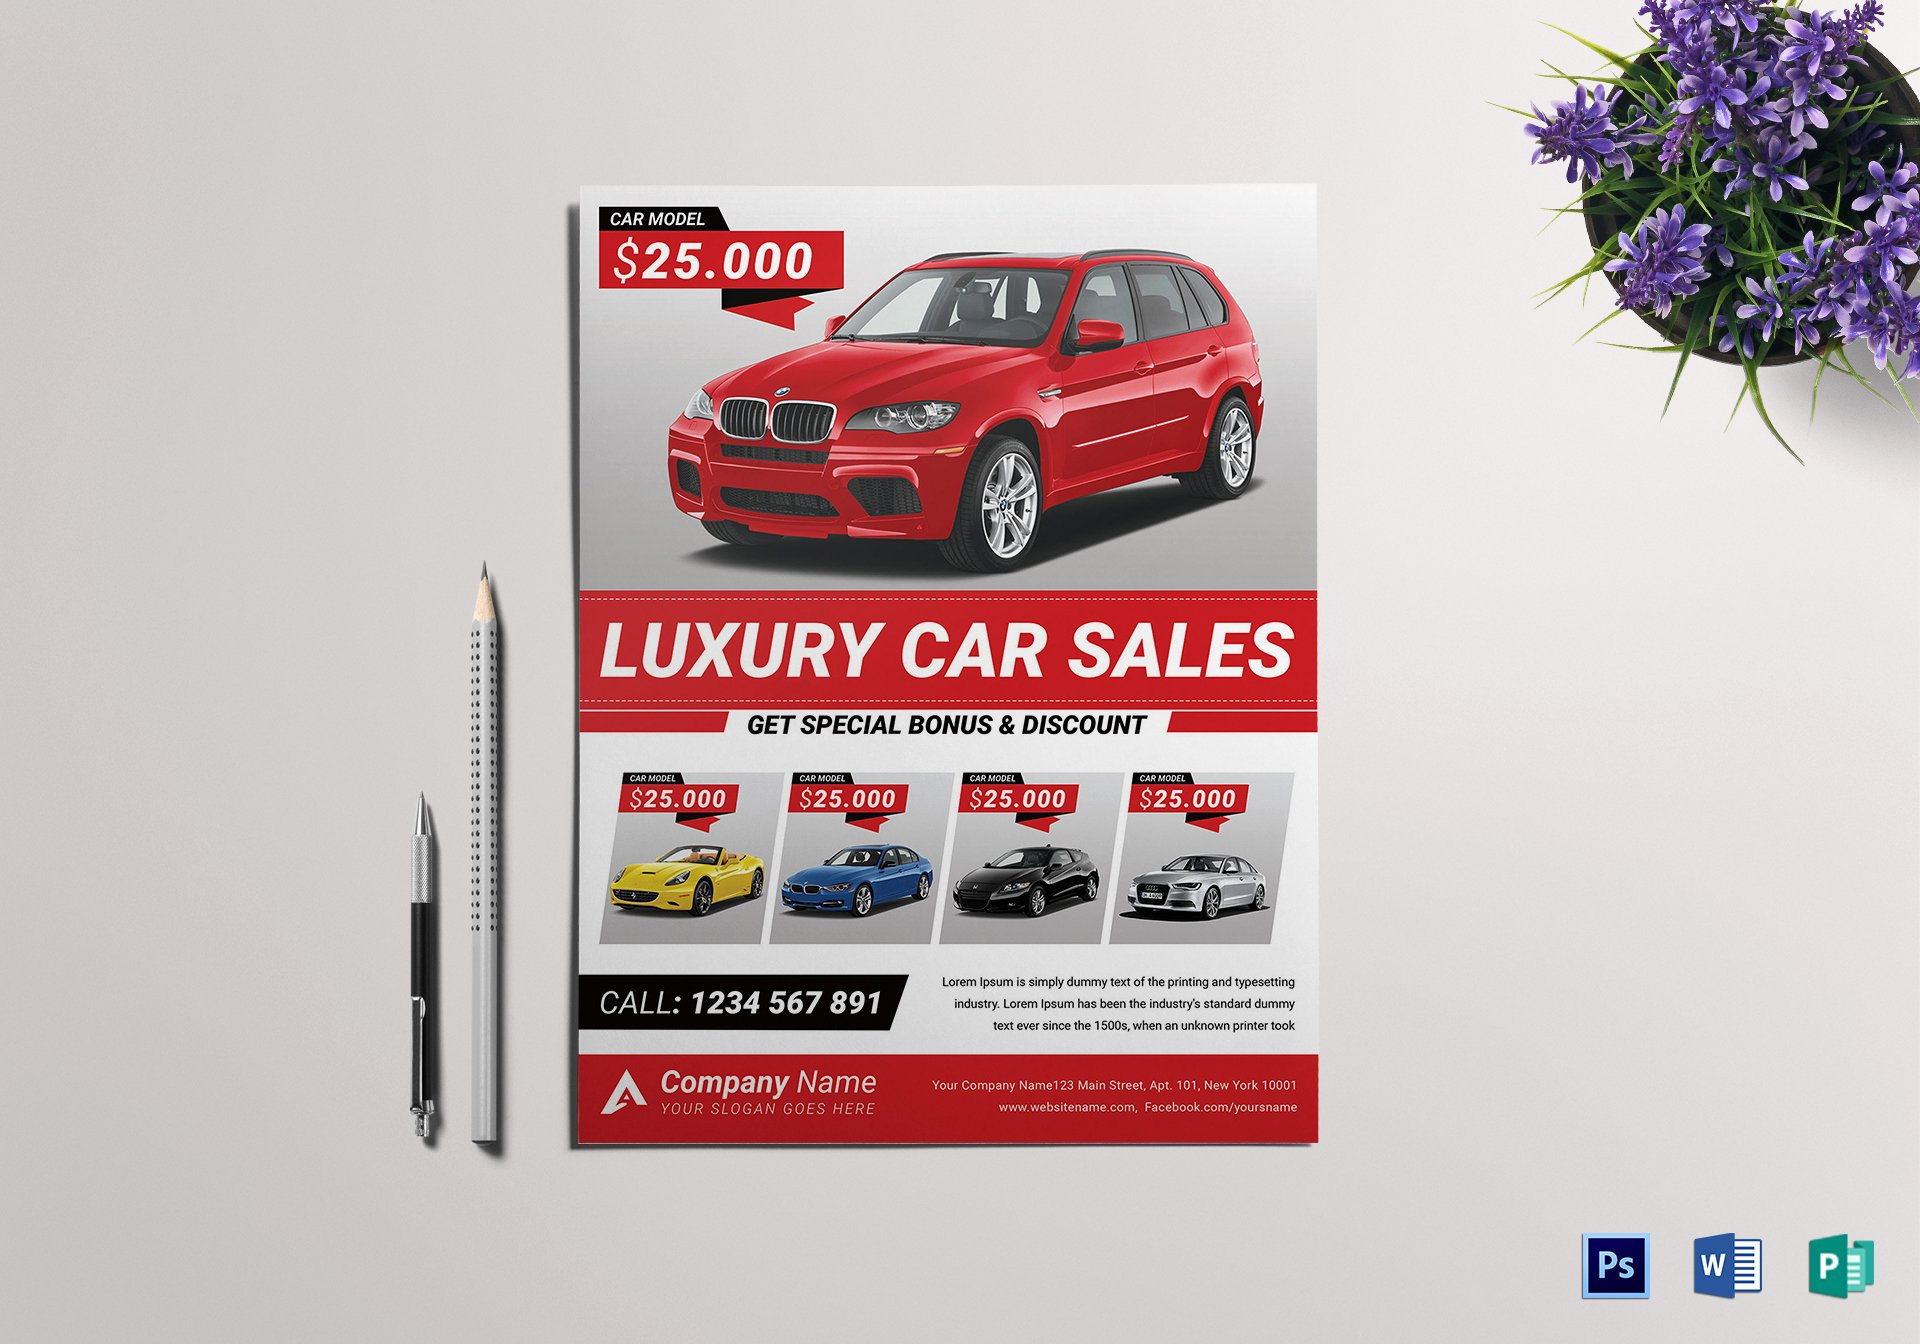 Car for Sale Flyer Template Fresh Car for Sale Flyer Design Template In Word Psd Publisher